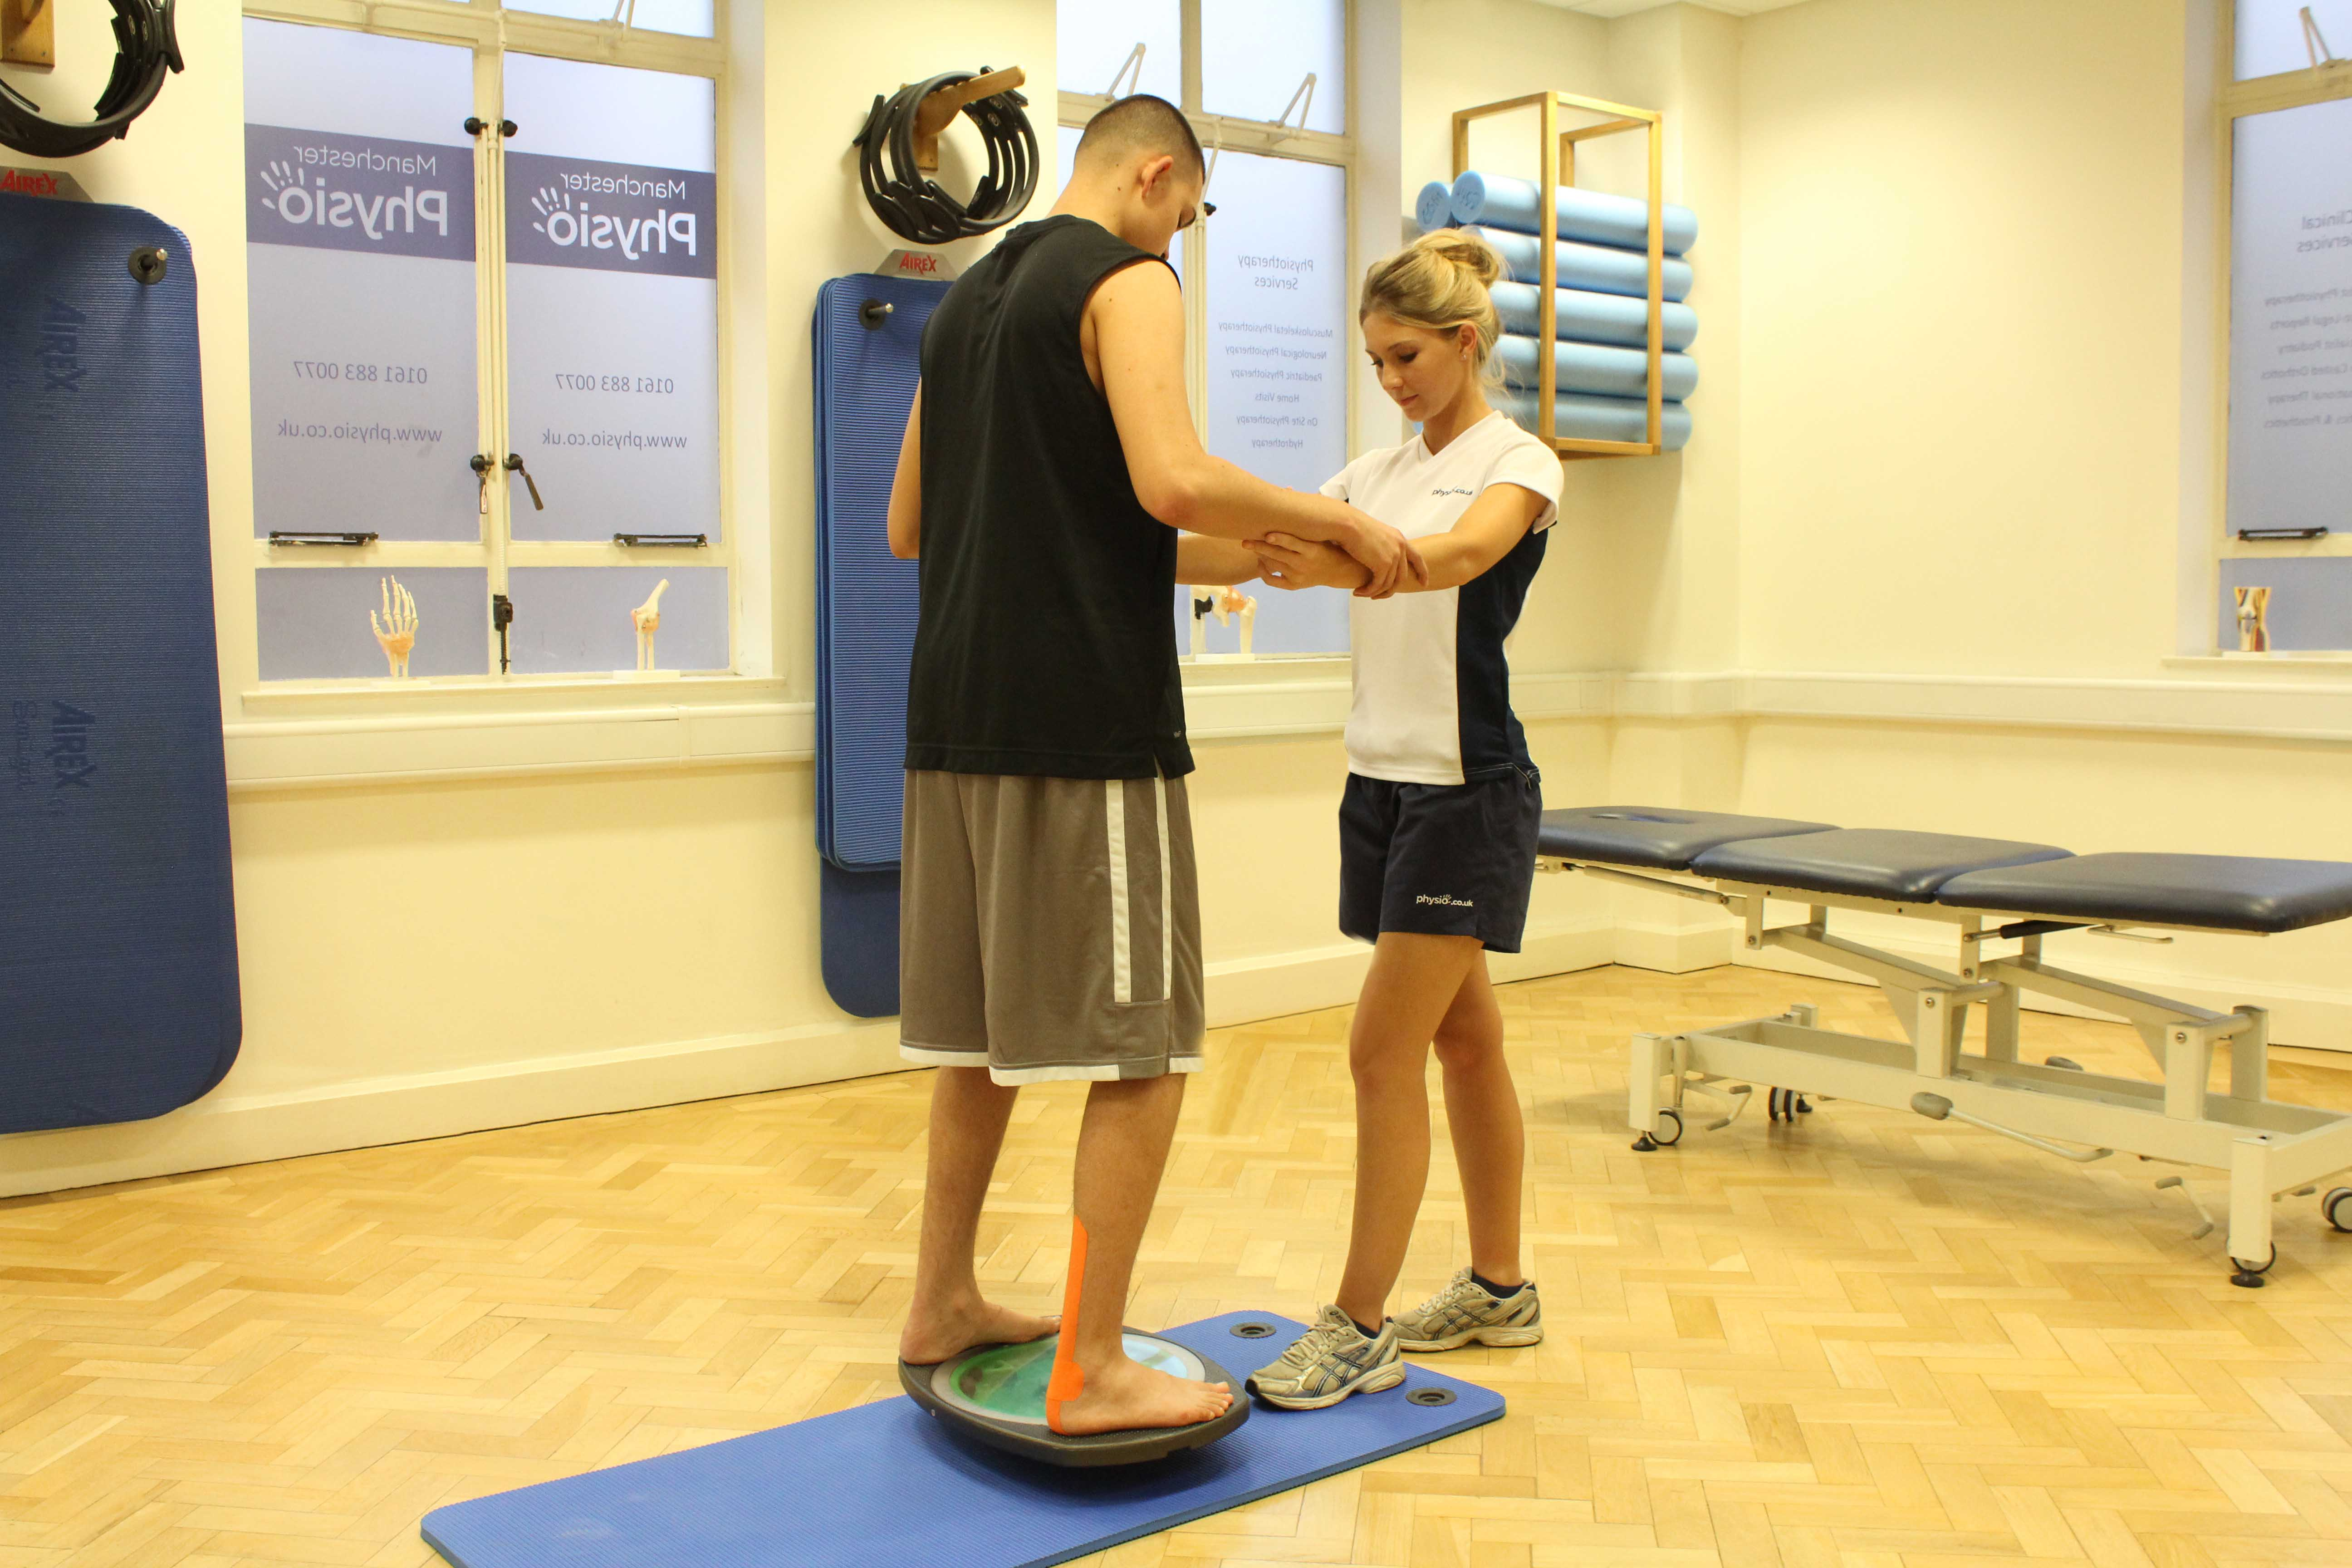 Taping the ankle to improve stability during balance exercises